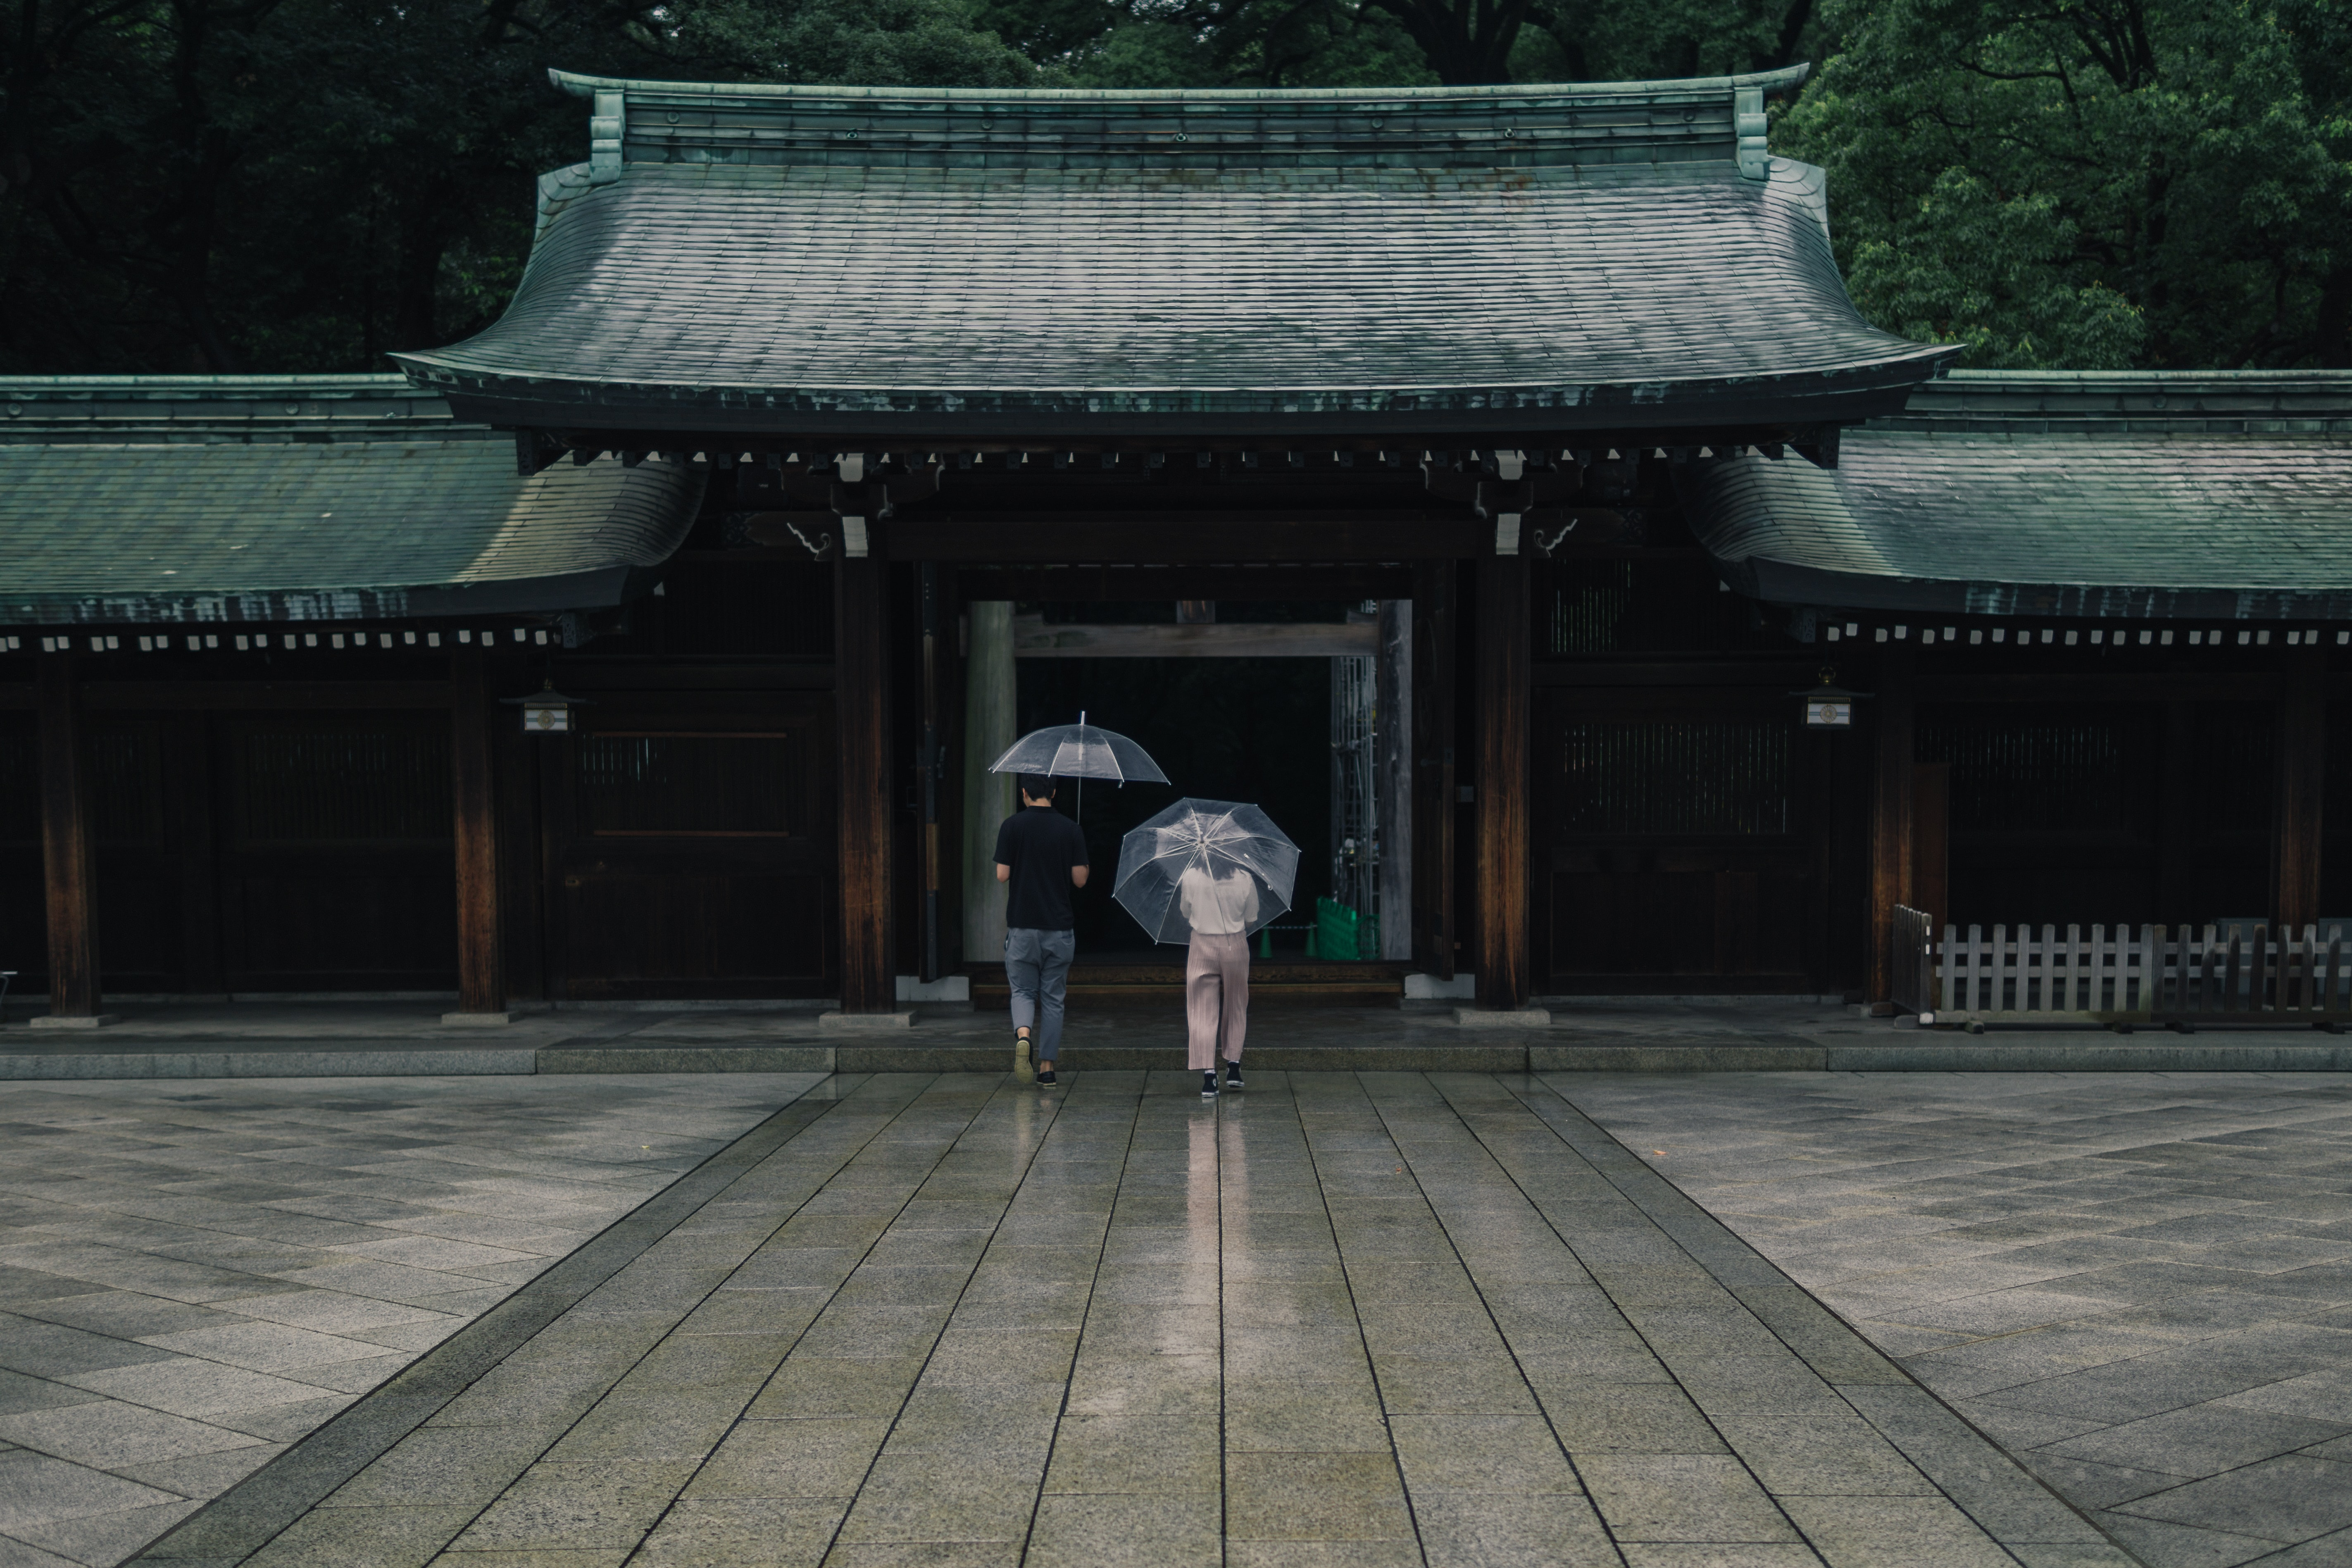 two people holding umbrellas near brown building during rainy season